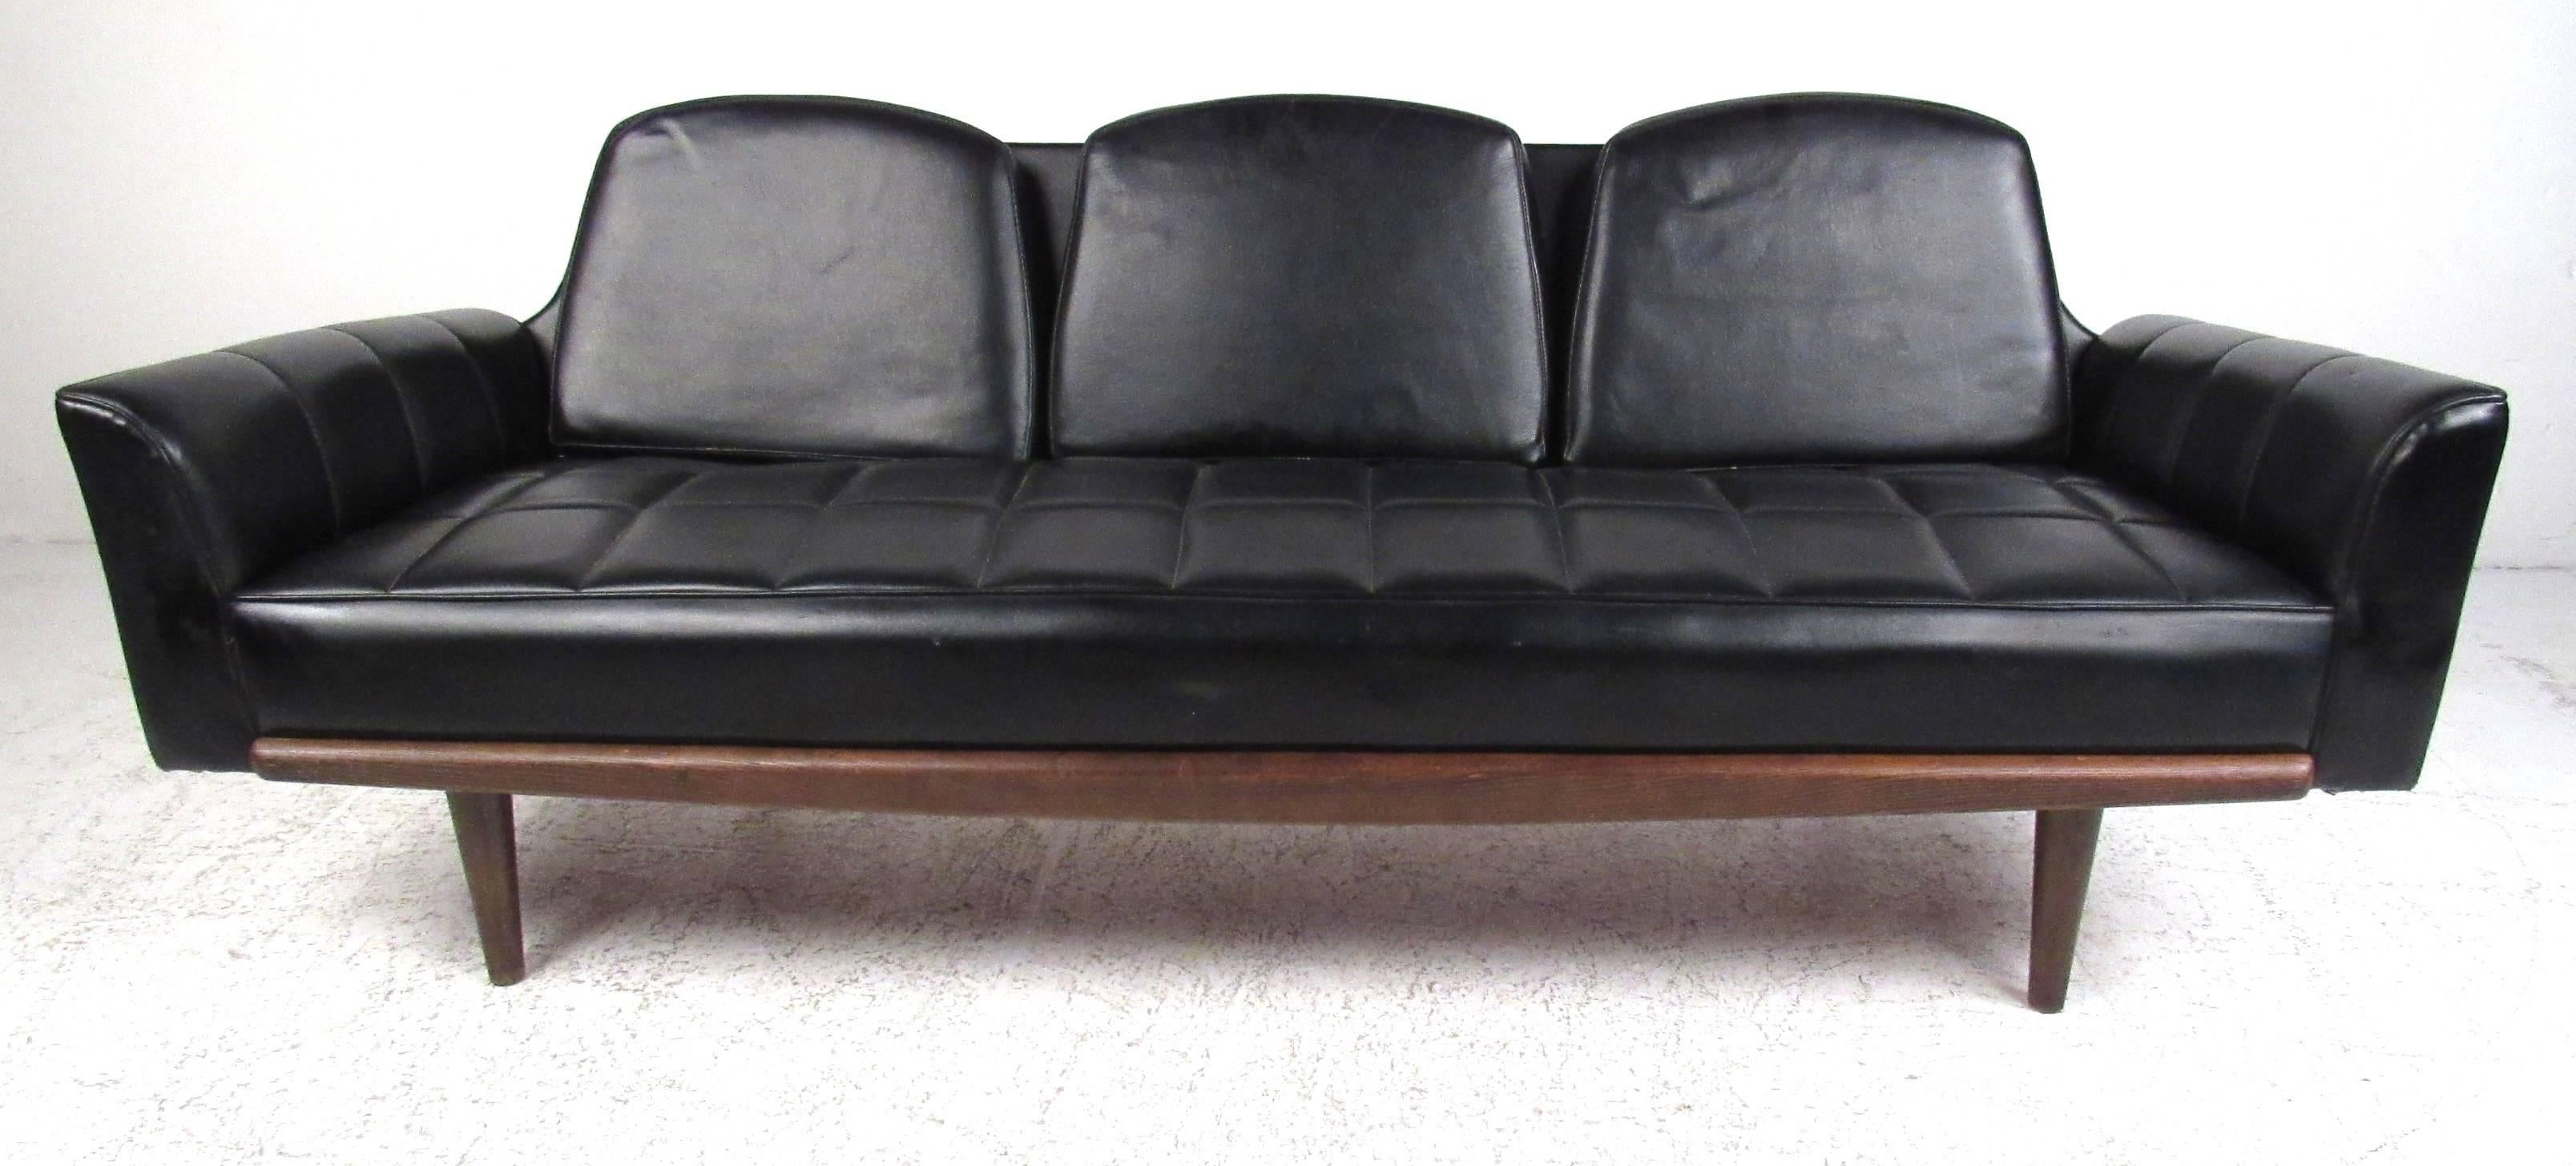 Classic Midcentury Black Vinyl Sofa Featuring A Grid Tufted Pattern Across  The Seats And Arms.